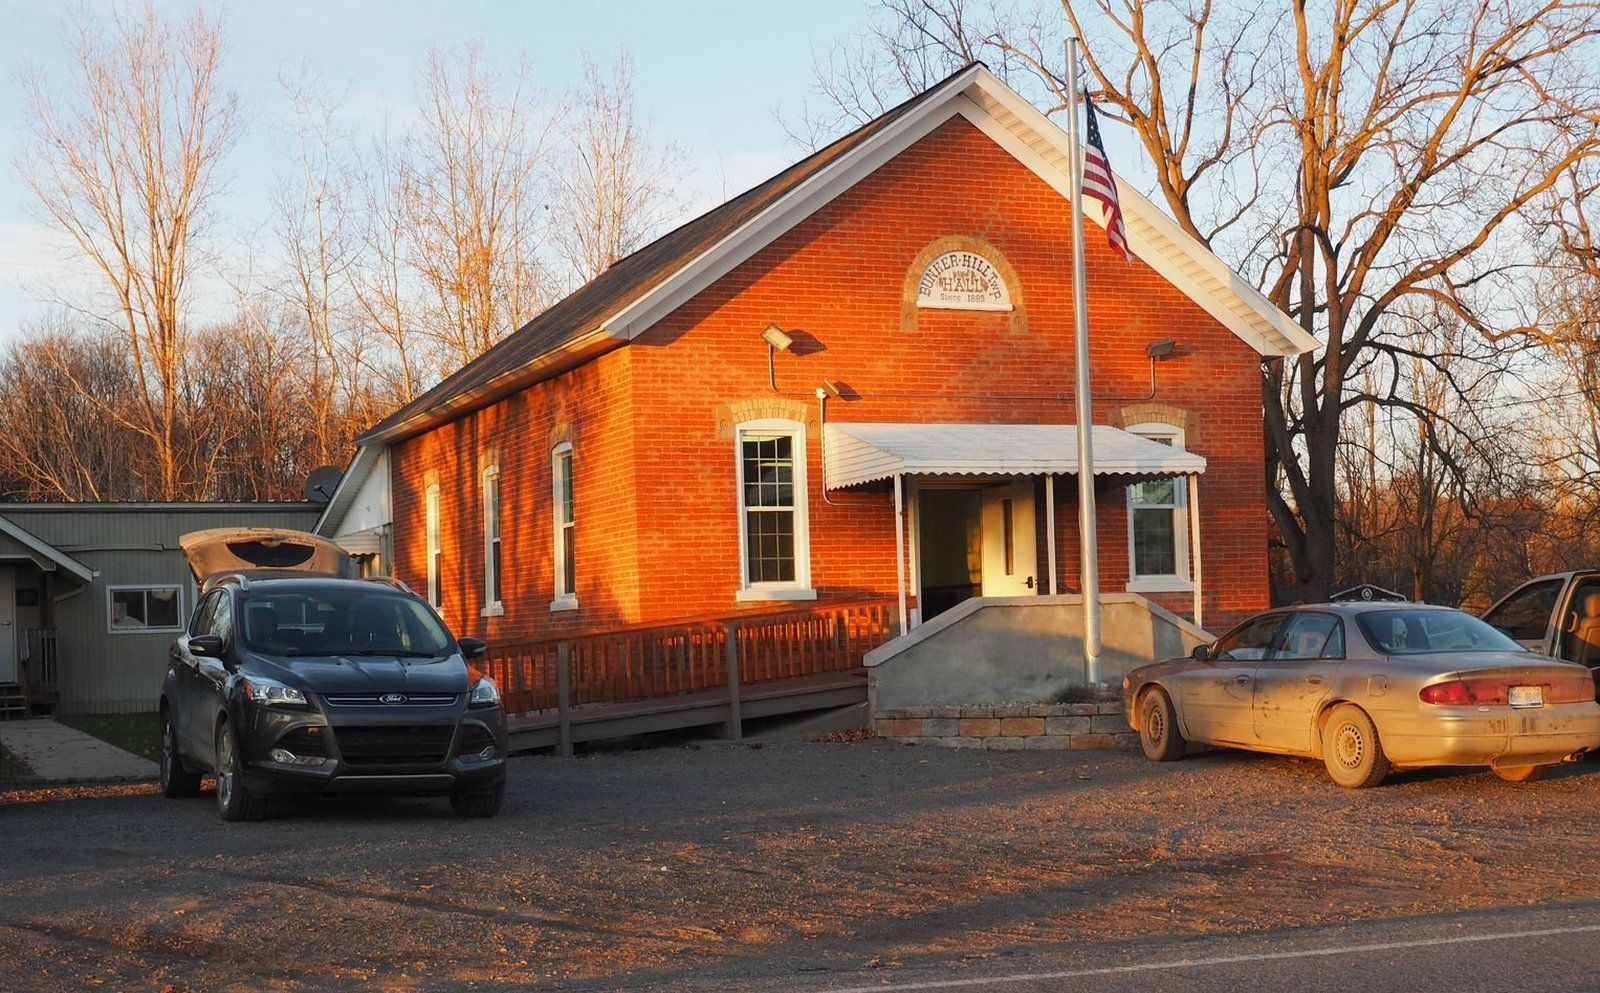 Bunker Hill Township Hall, Ingham County, Michigan. 12 November 2016. A baby shower was in progress.